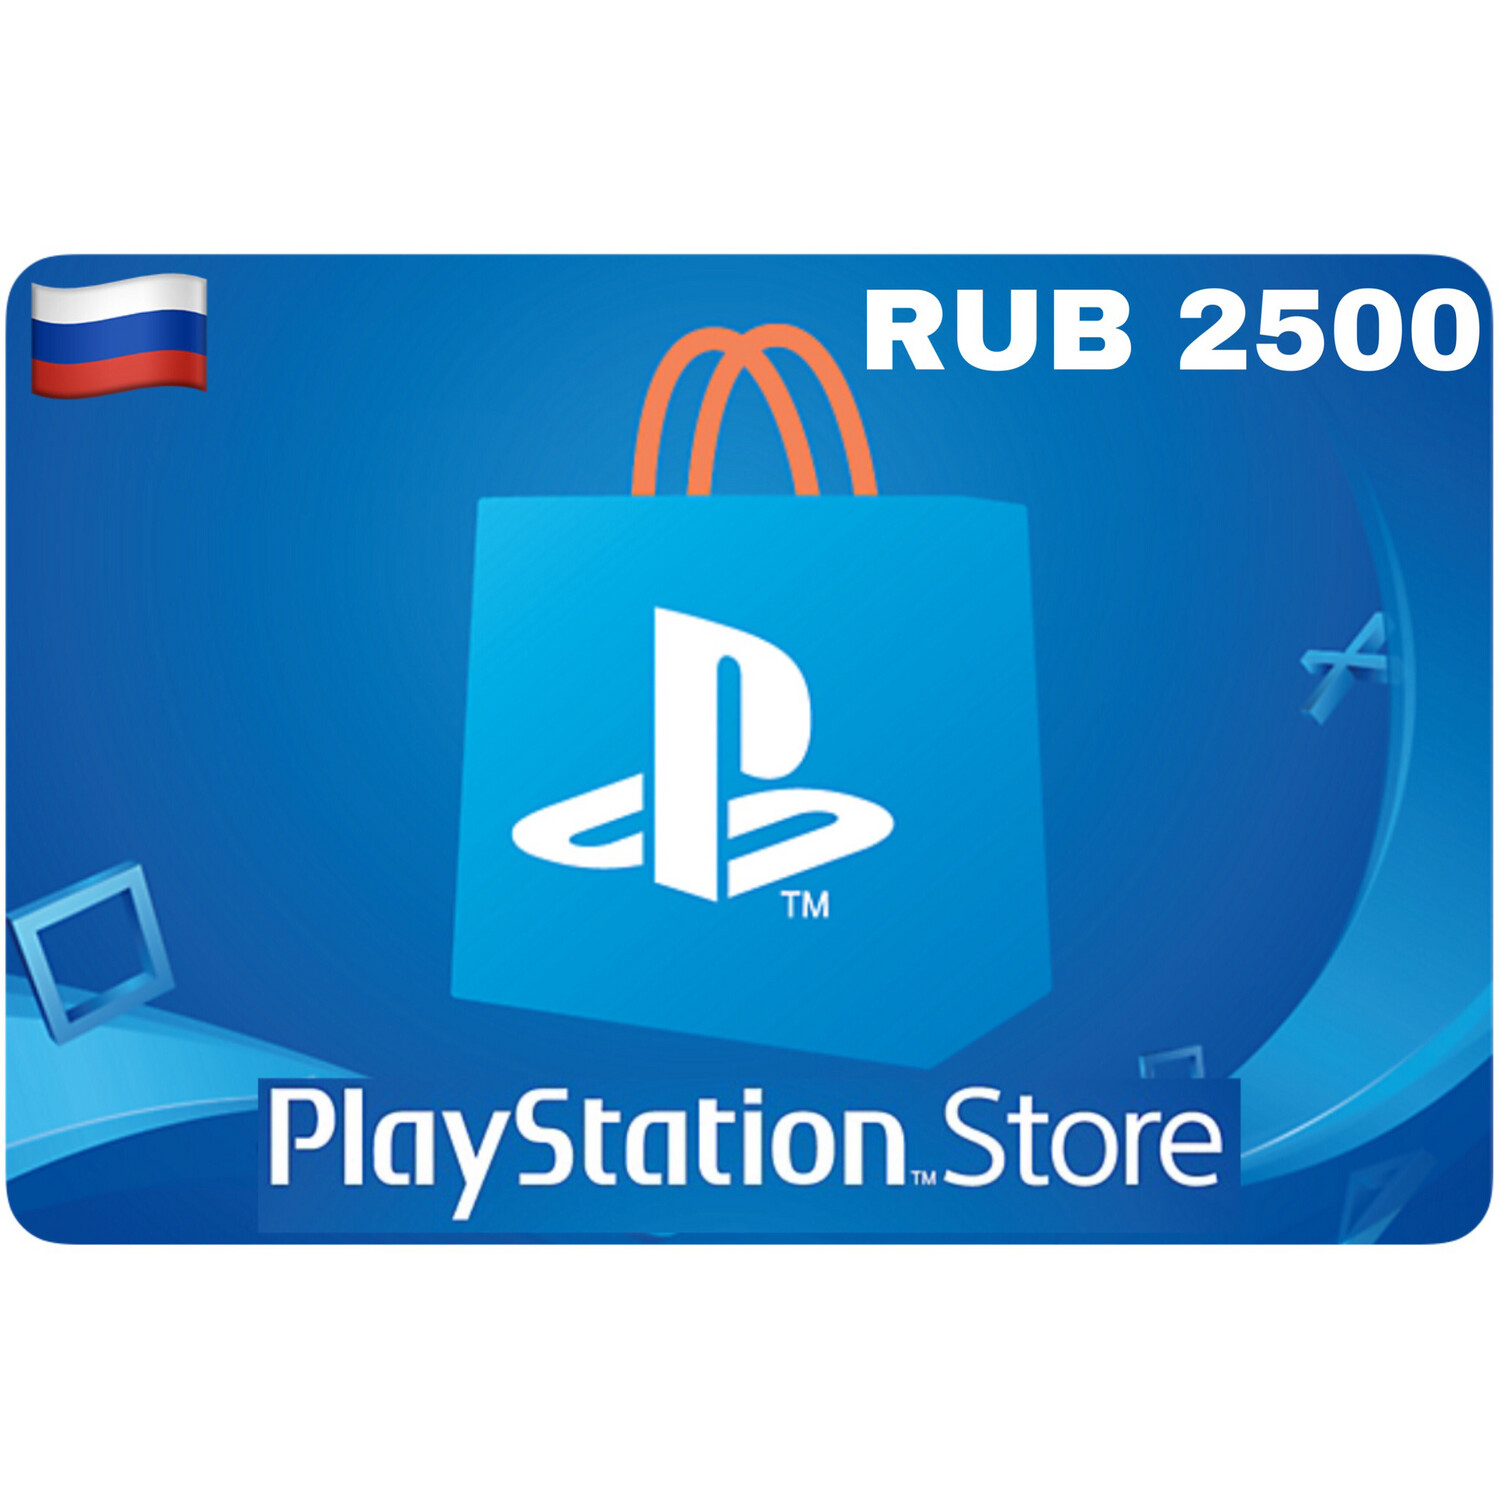 Playstation Store Gift Card Russia RUB 2500